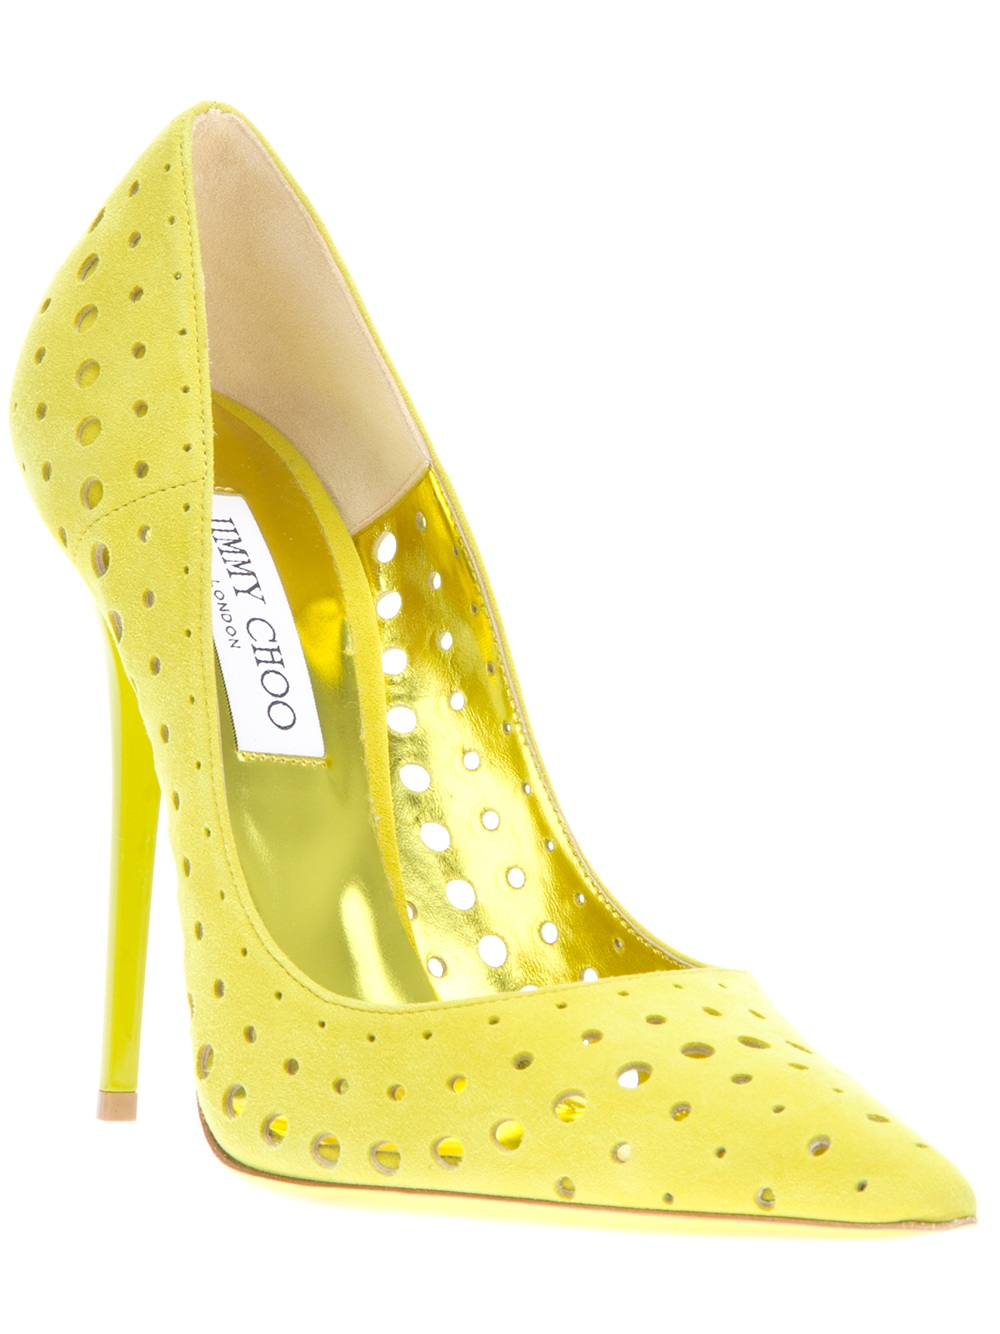 Jimmy choo Perforated Pumps in Yellow | Lyst